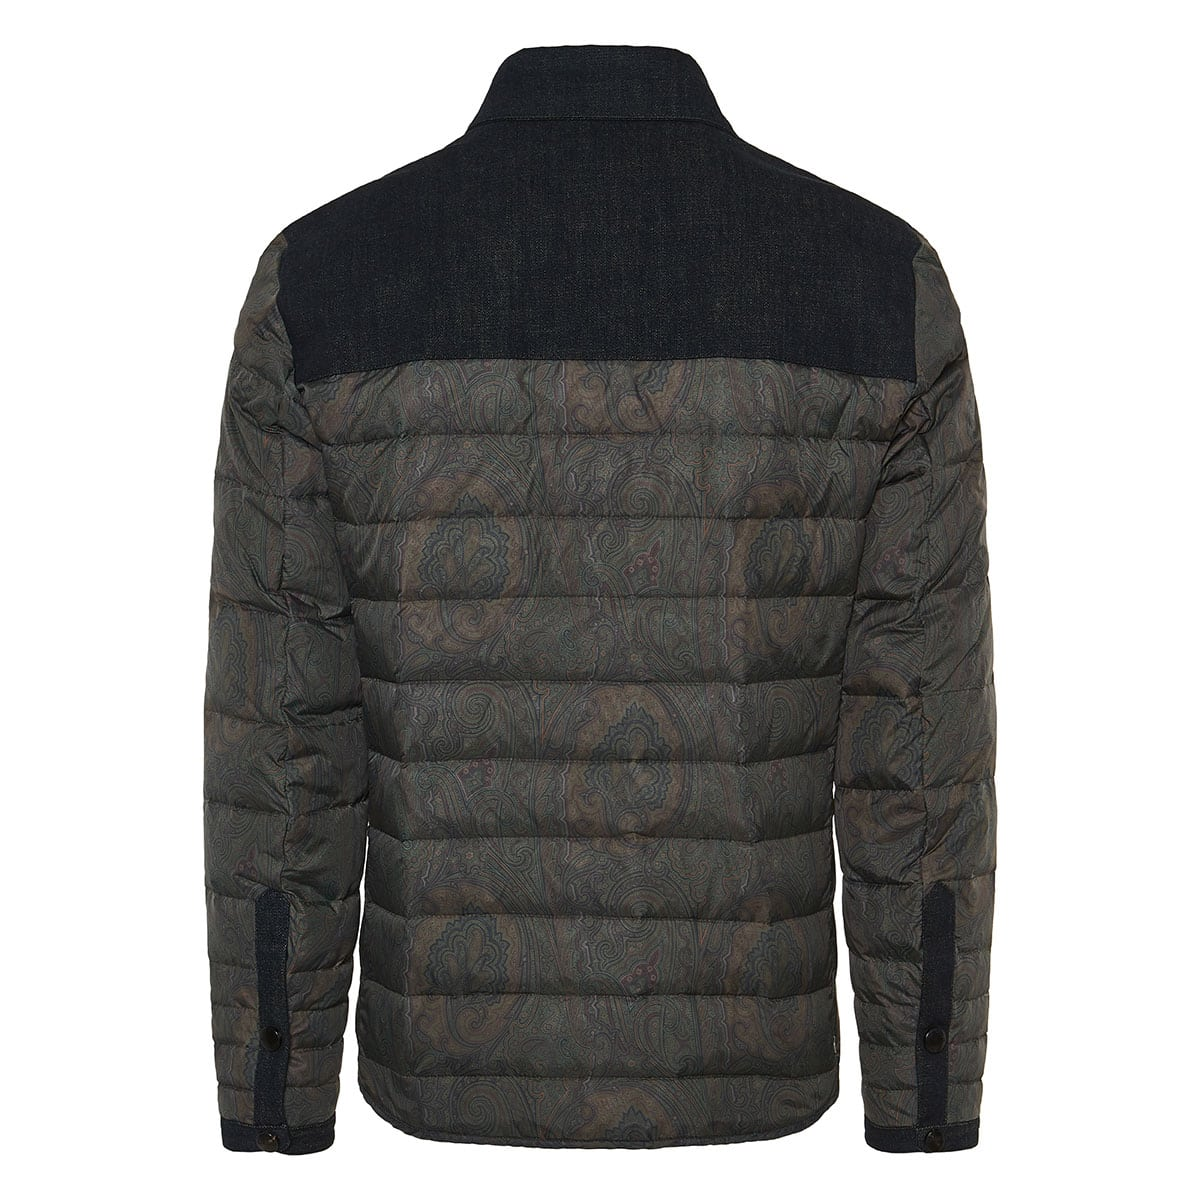 Paisley quilted puffer jacket